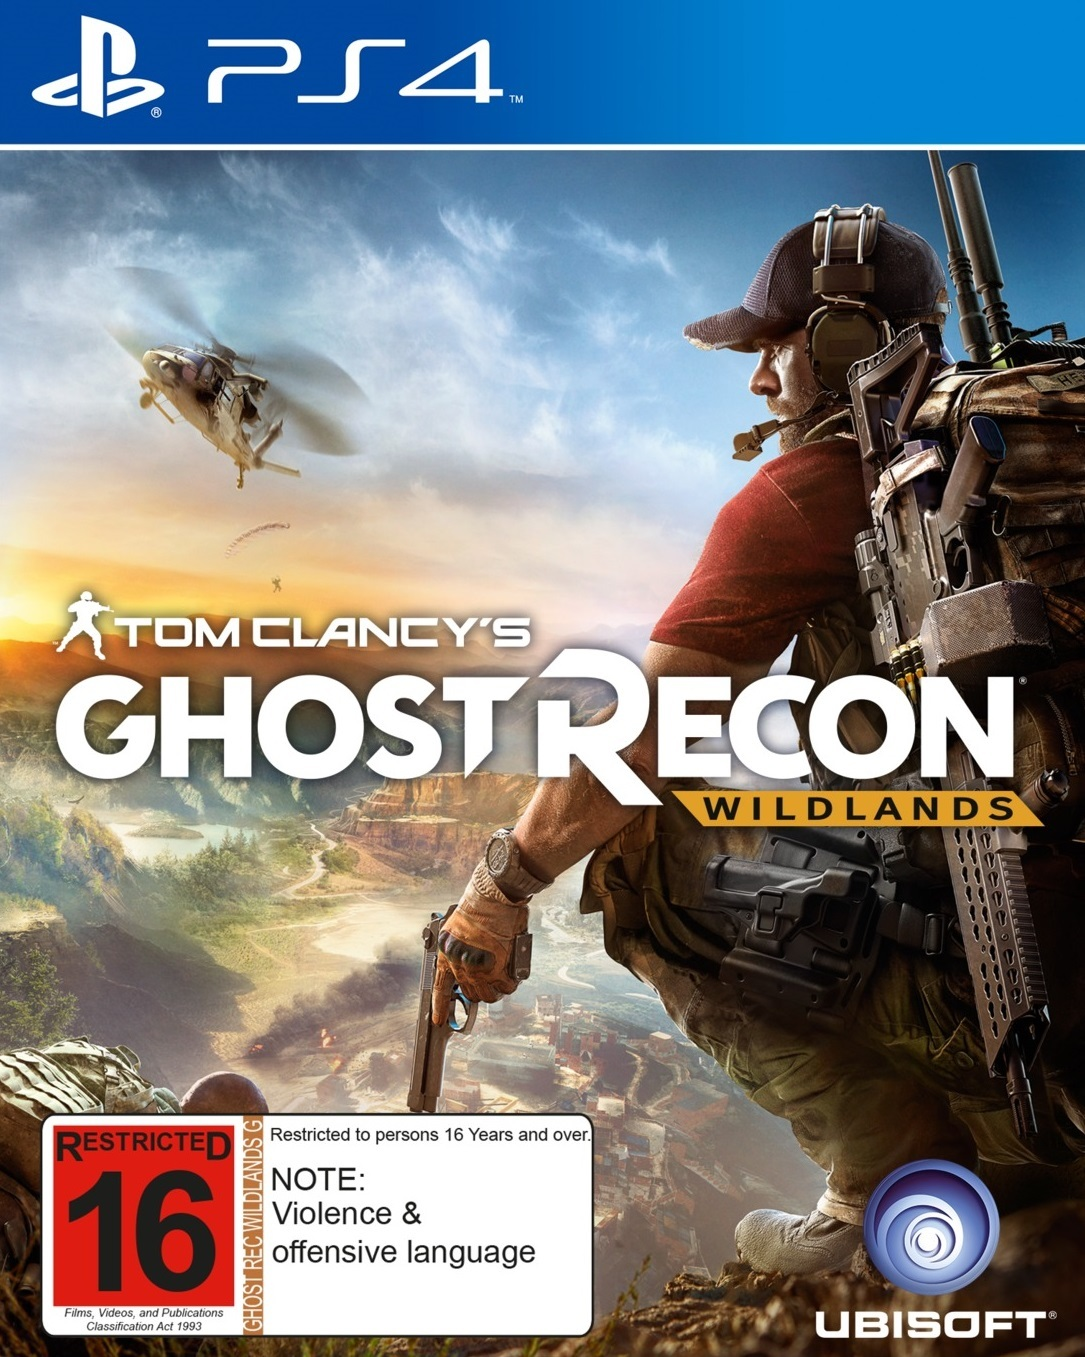 Tom Clancy's Ghost Recon: Wildlands for PS4 image